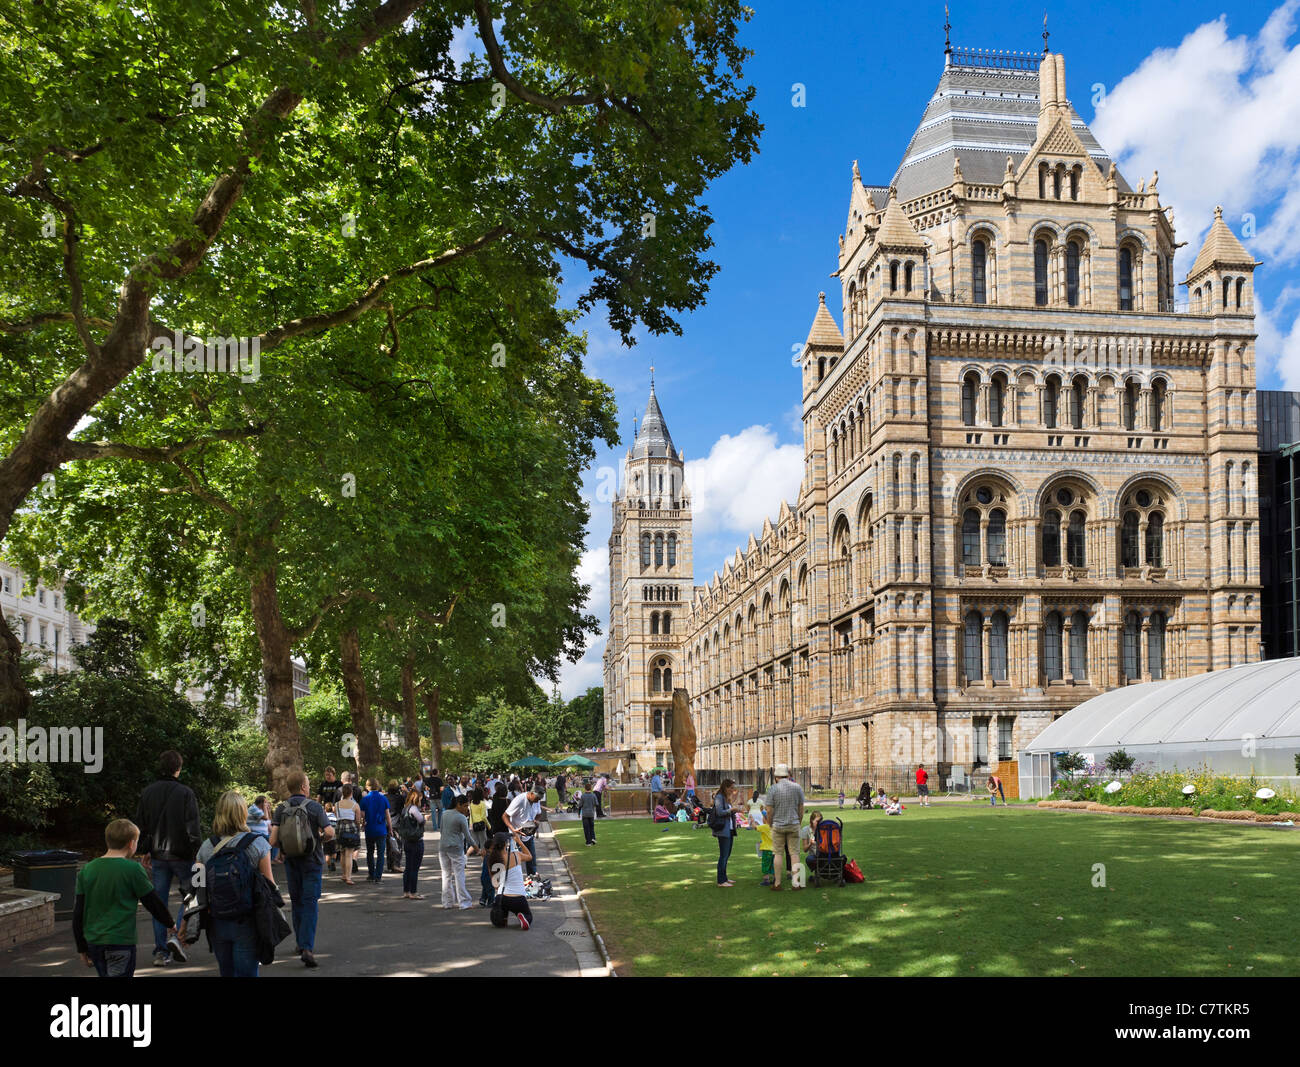 The Natural History Museum, Exhibition Road, South Kensington, London, England, UK - Stock Image